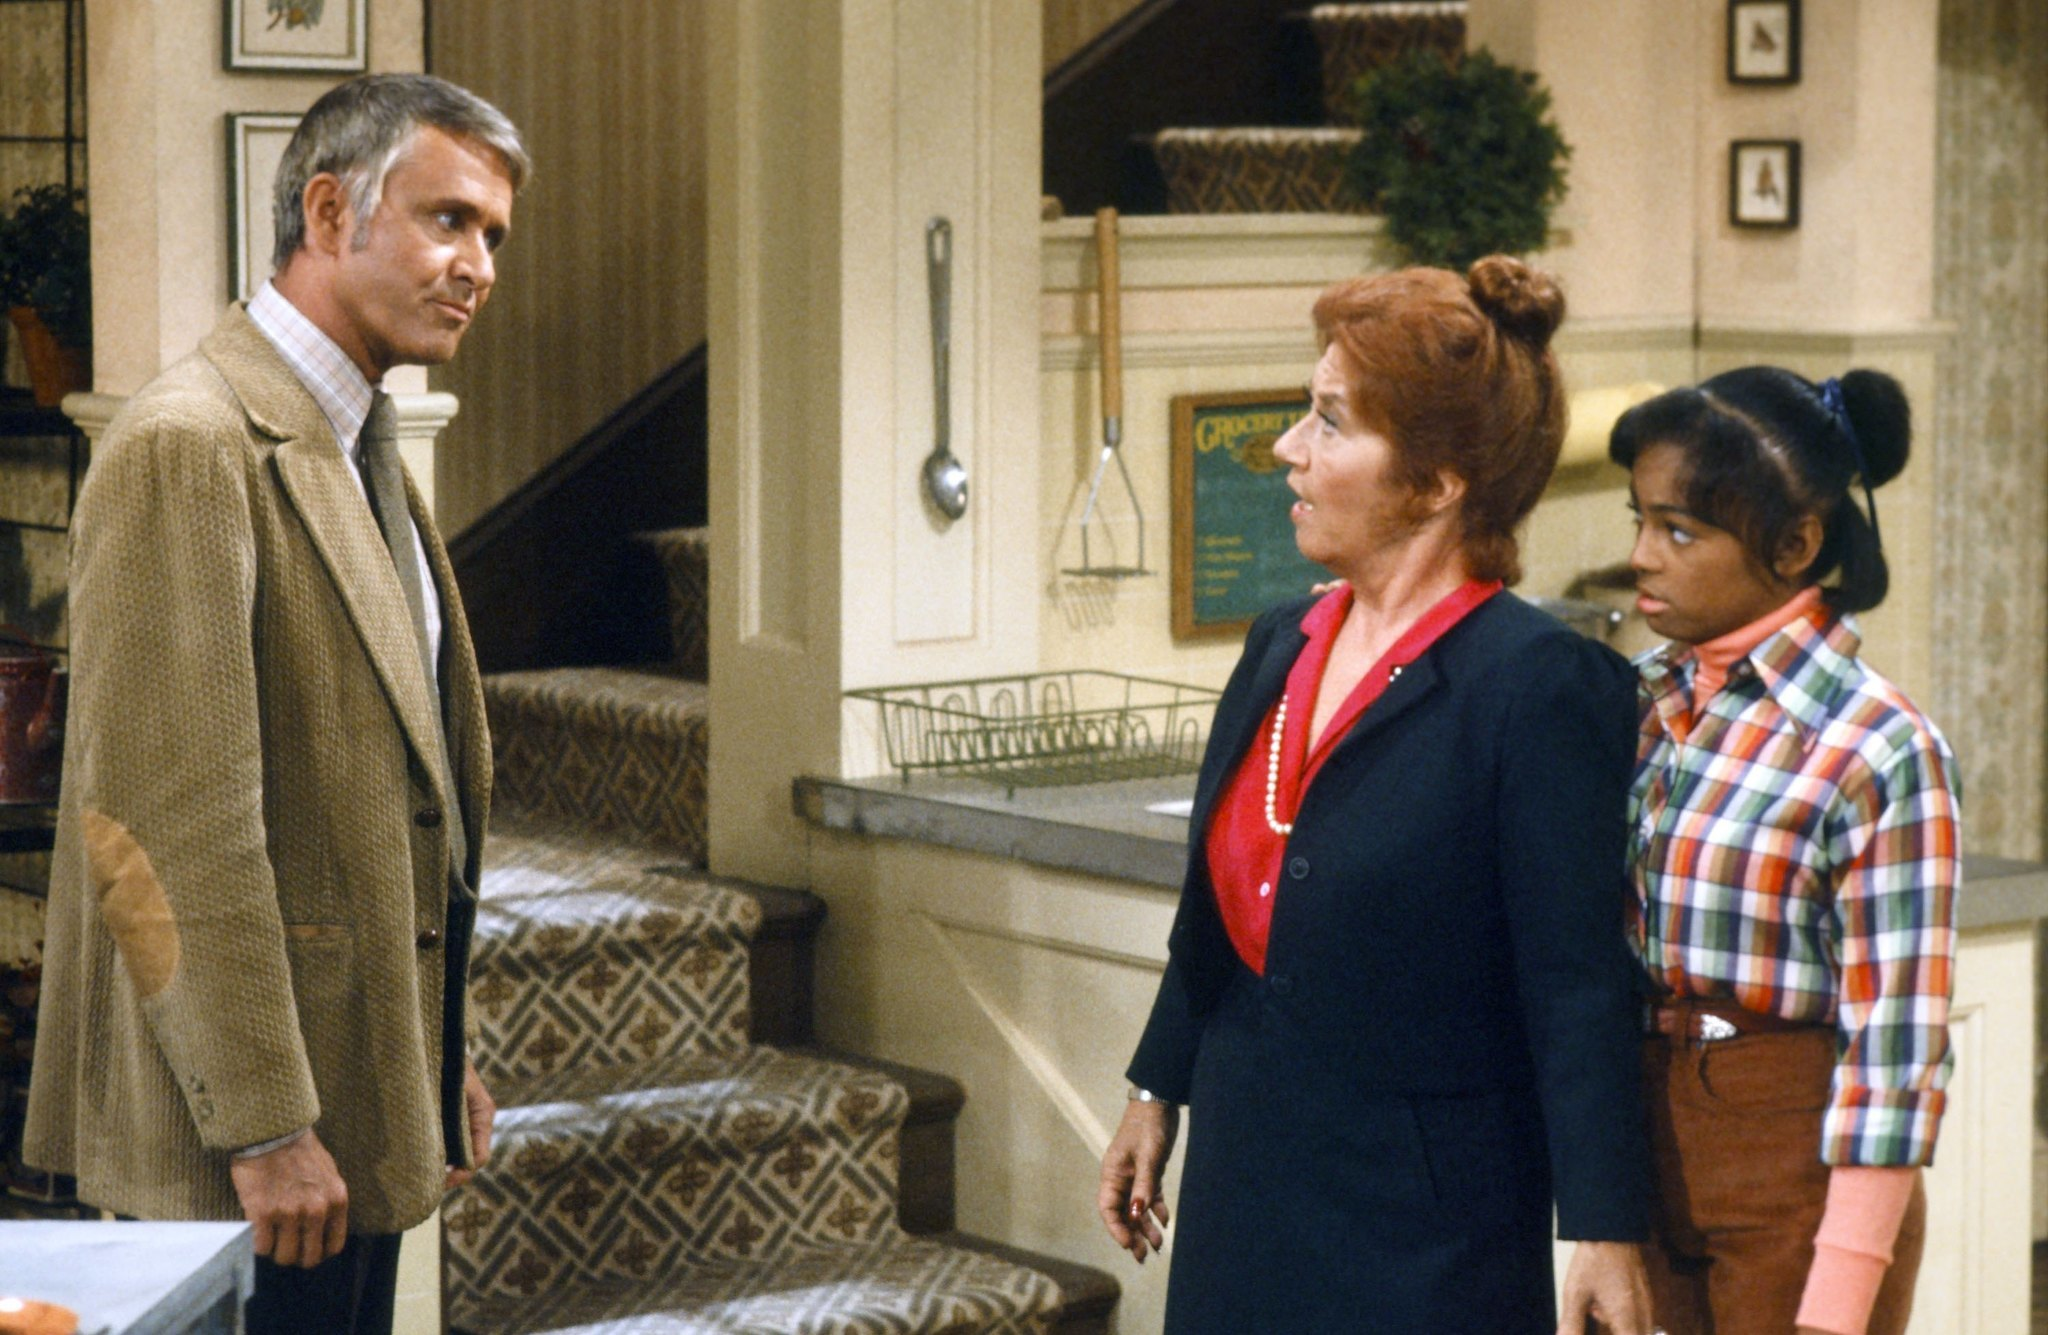 Roger Perry, 'The Facts of Life' and 'Harrigan and Son' actor, dies at 85